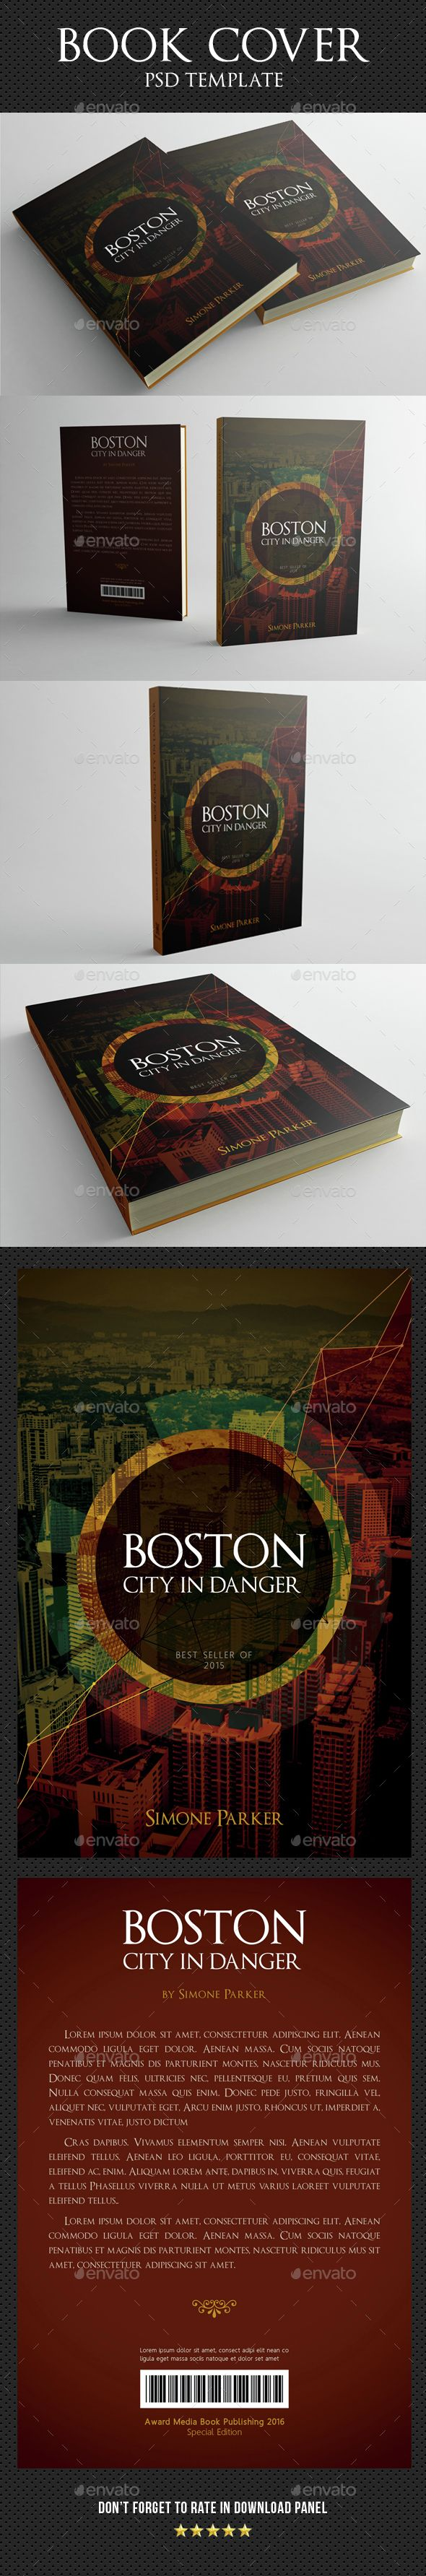 Book Cover Template 06 — Photoshop PSD #edition #book cover template • Available here → https://graphicriver.net/item/book-cover-template-06/15160556?ref=pxcr